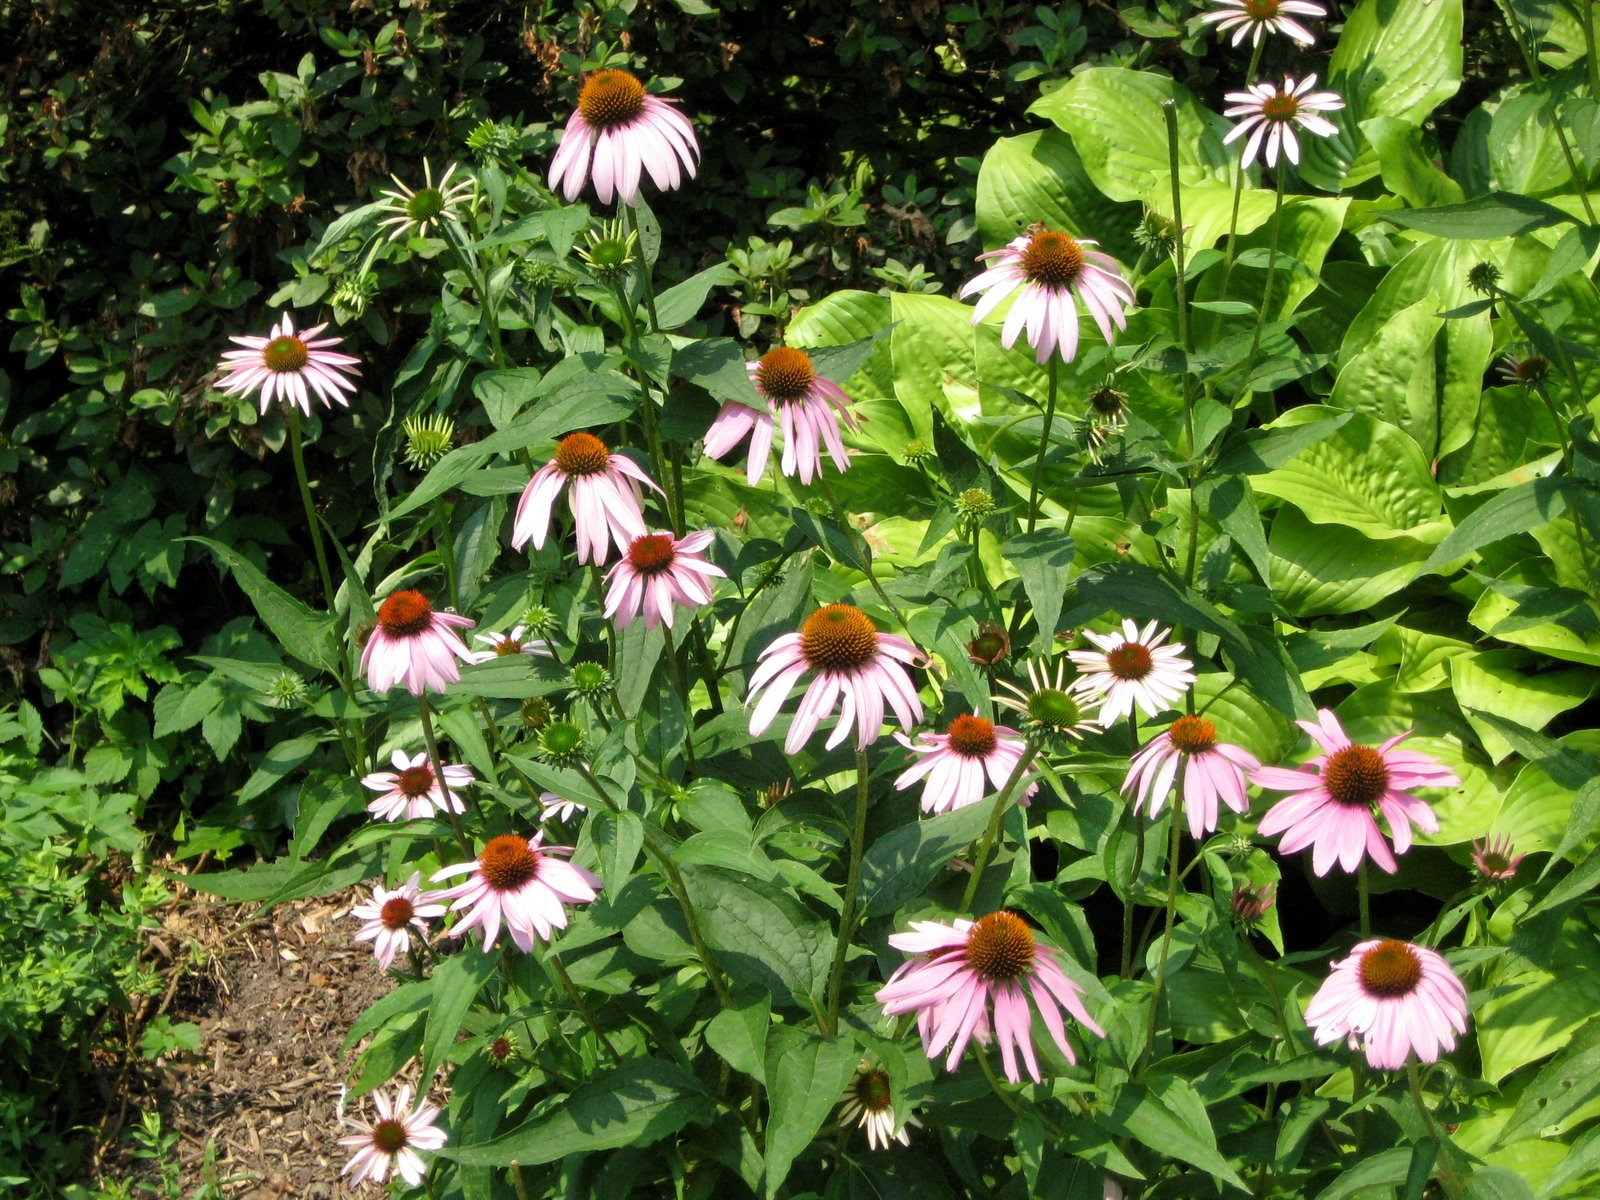 Eastern Purple Coneflower or Purple Coneflower Echinacea purpurea